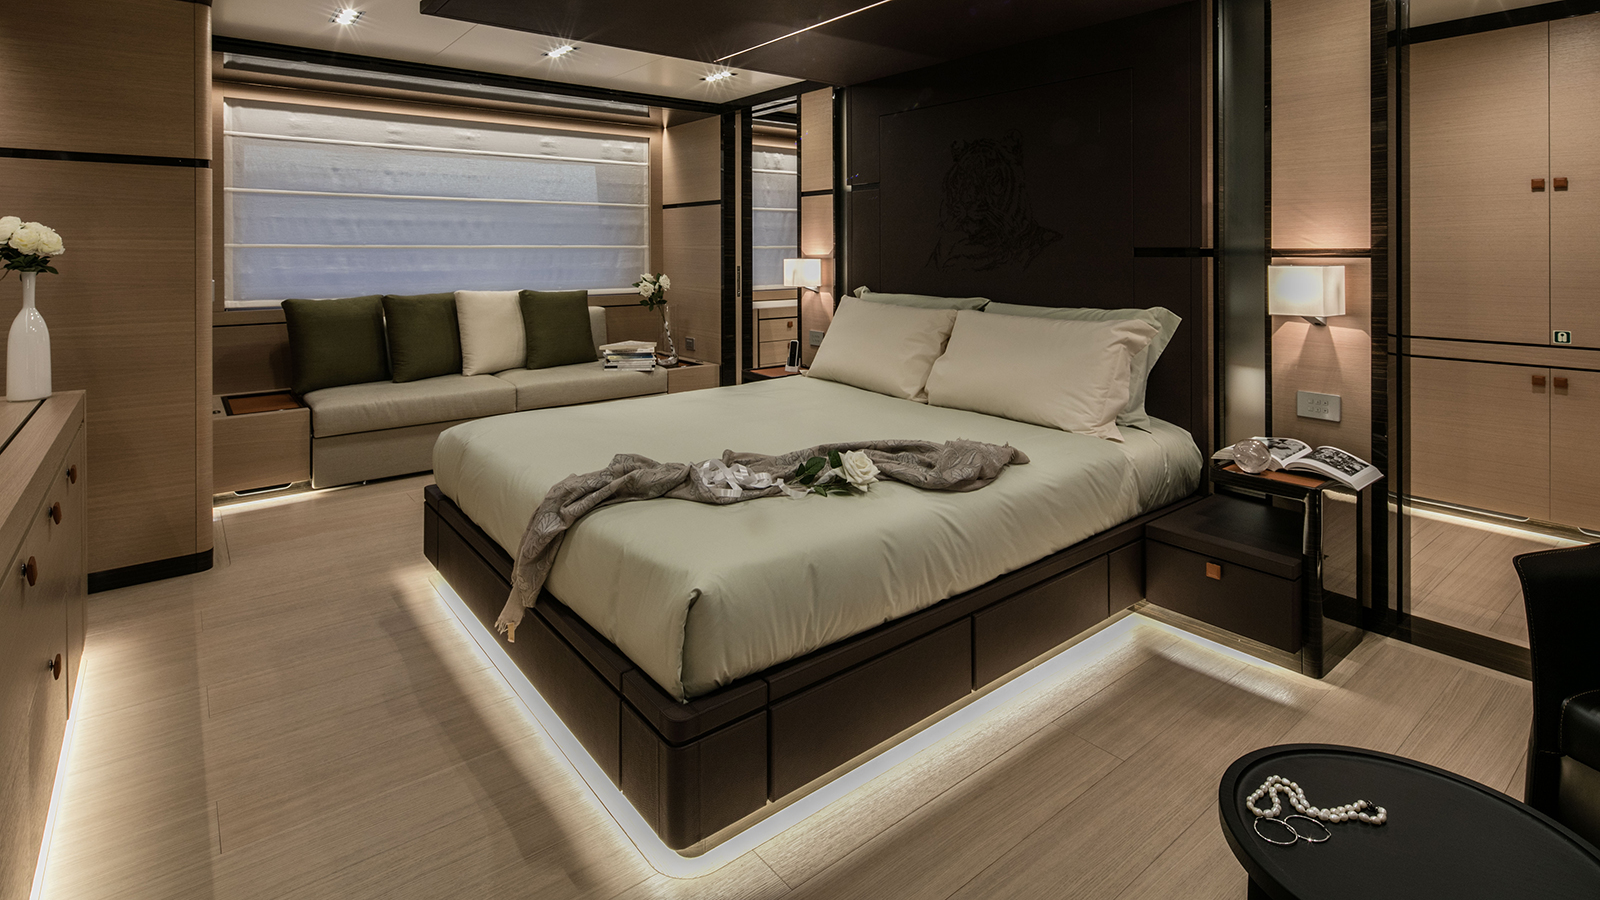 the-master-suite-of-the-cantiere-delle-marche-nauta-air-111-yacht-hyhma